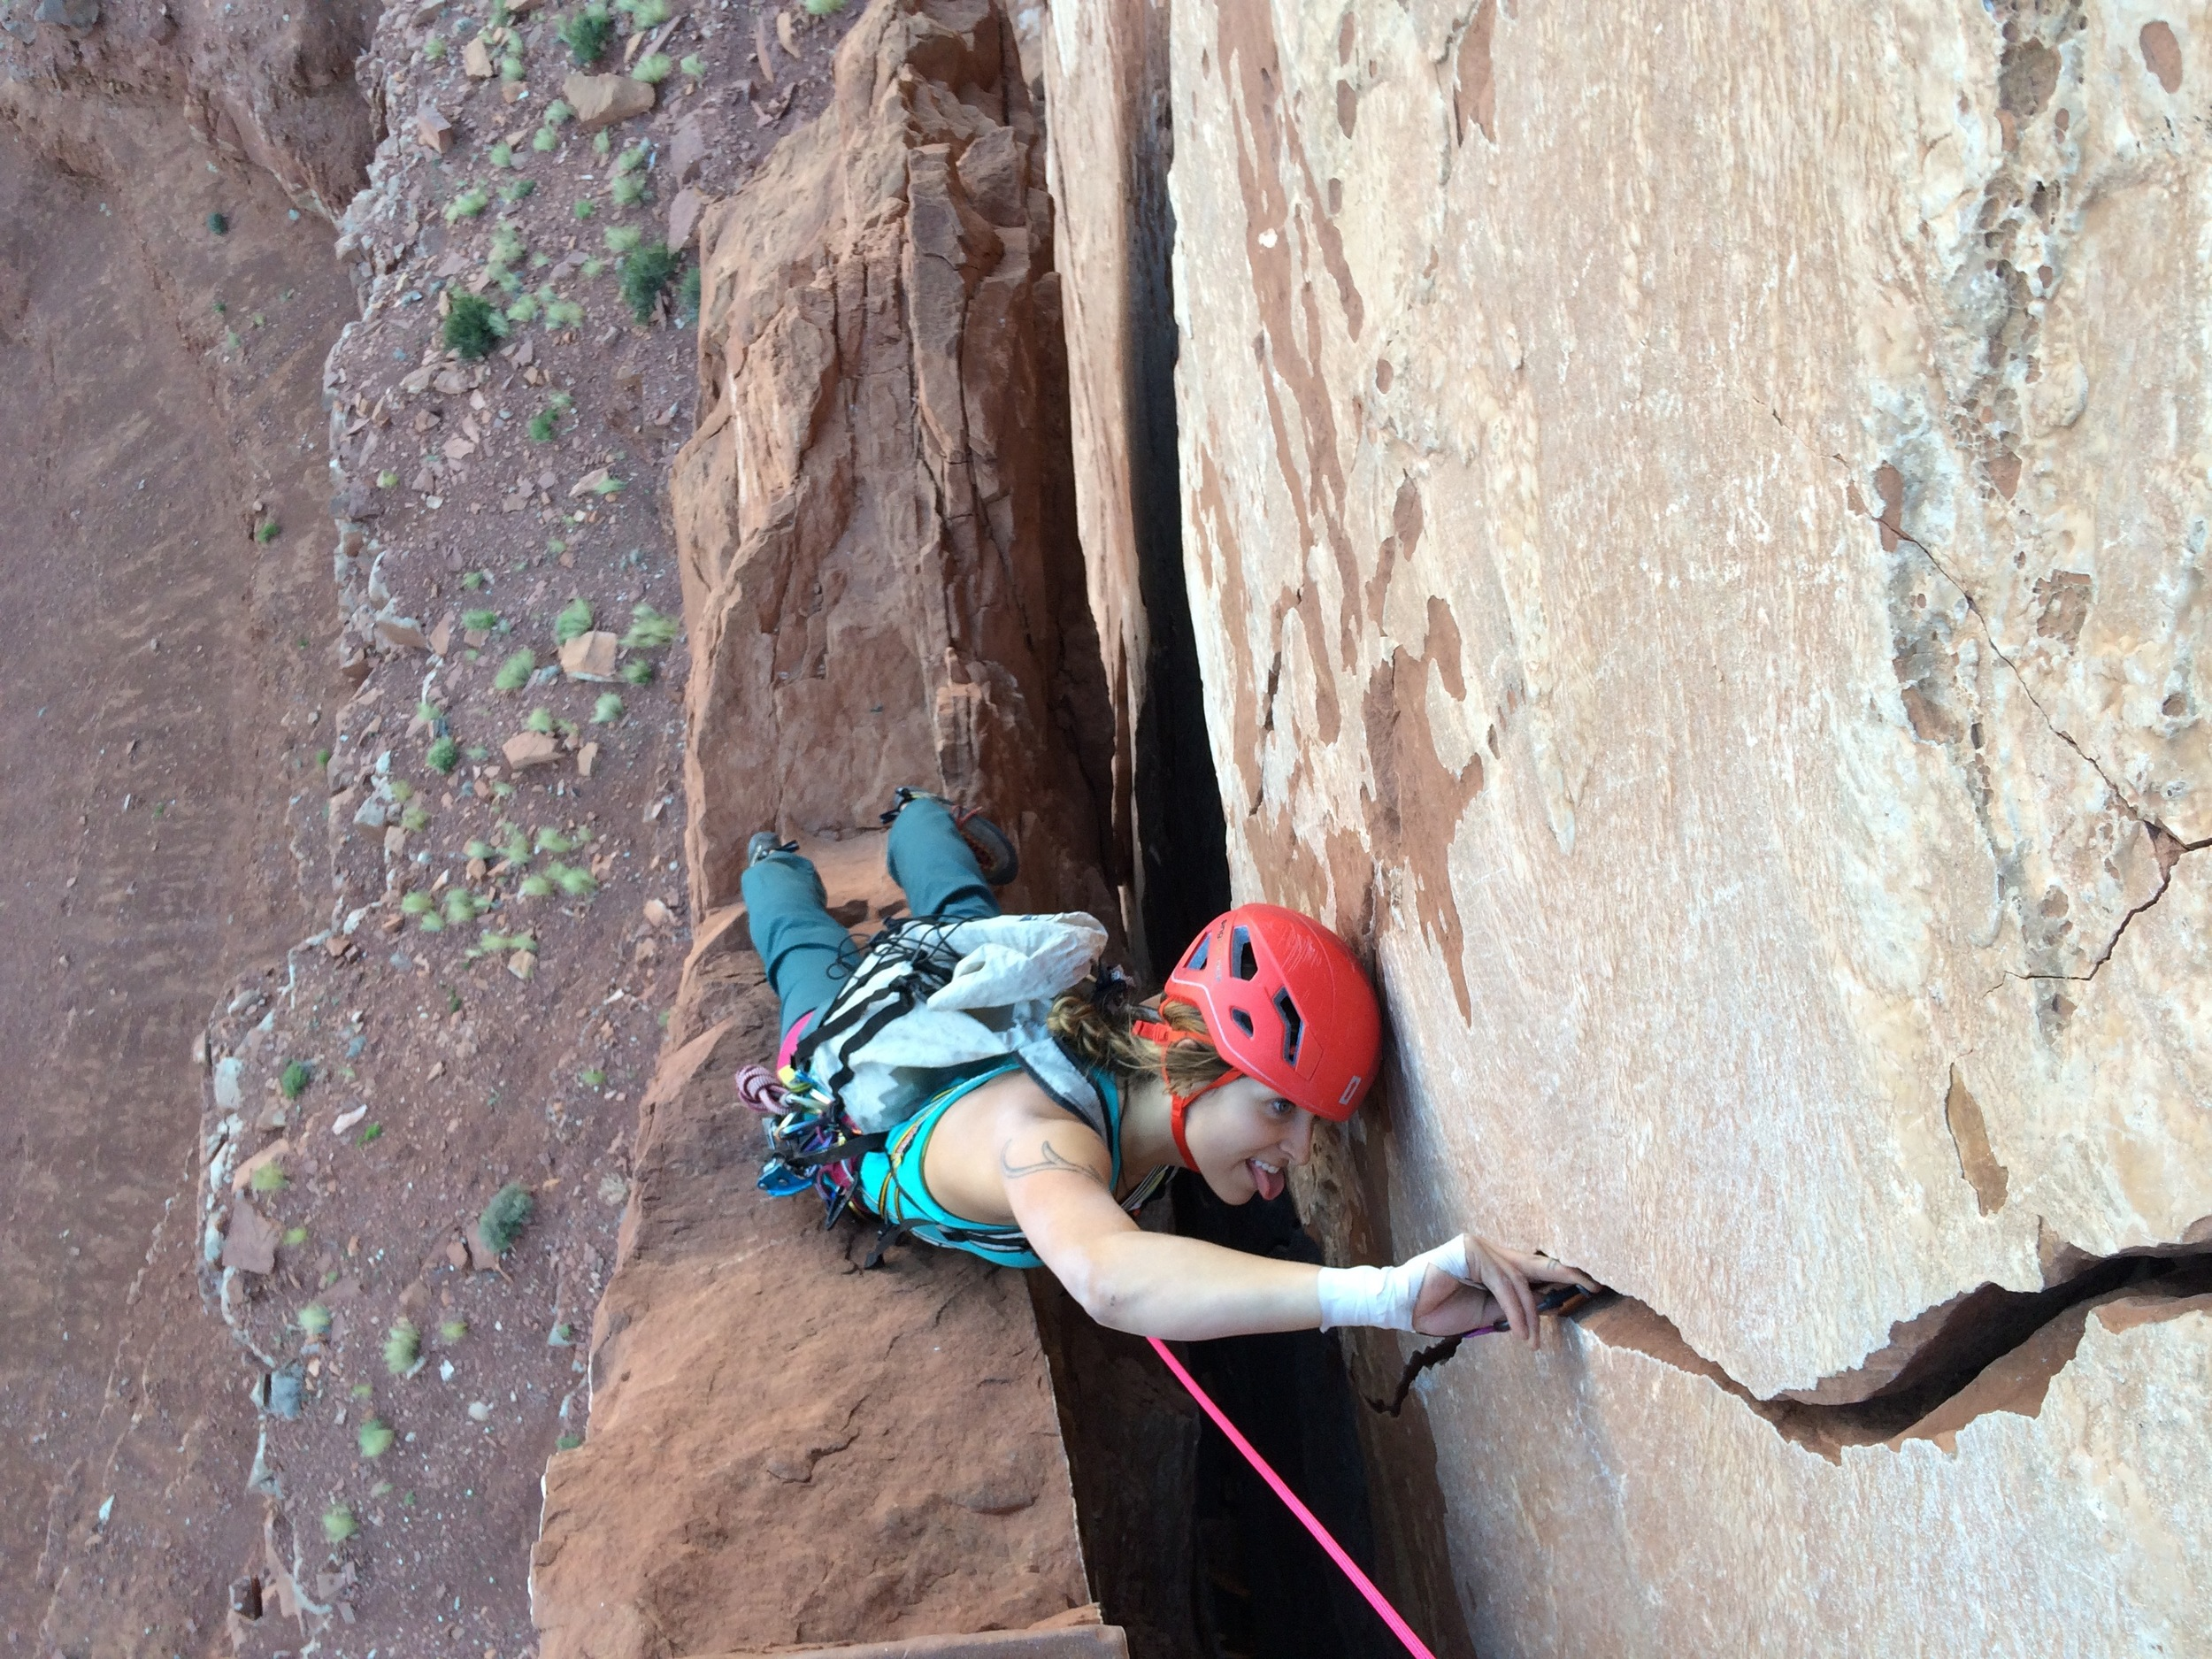 emily grabbing gear from pitches one and two